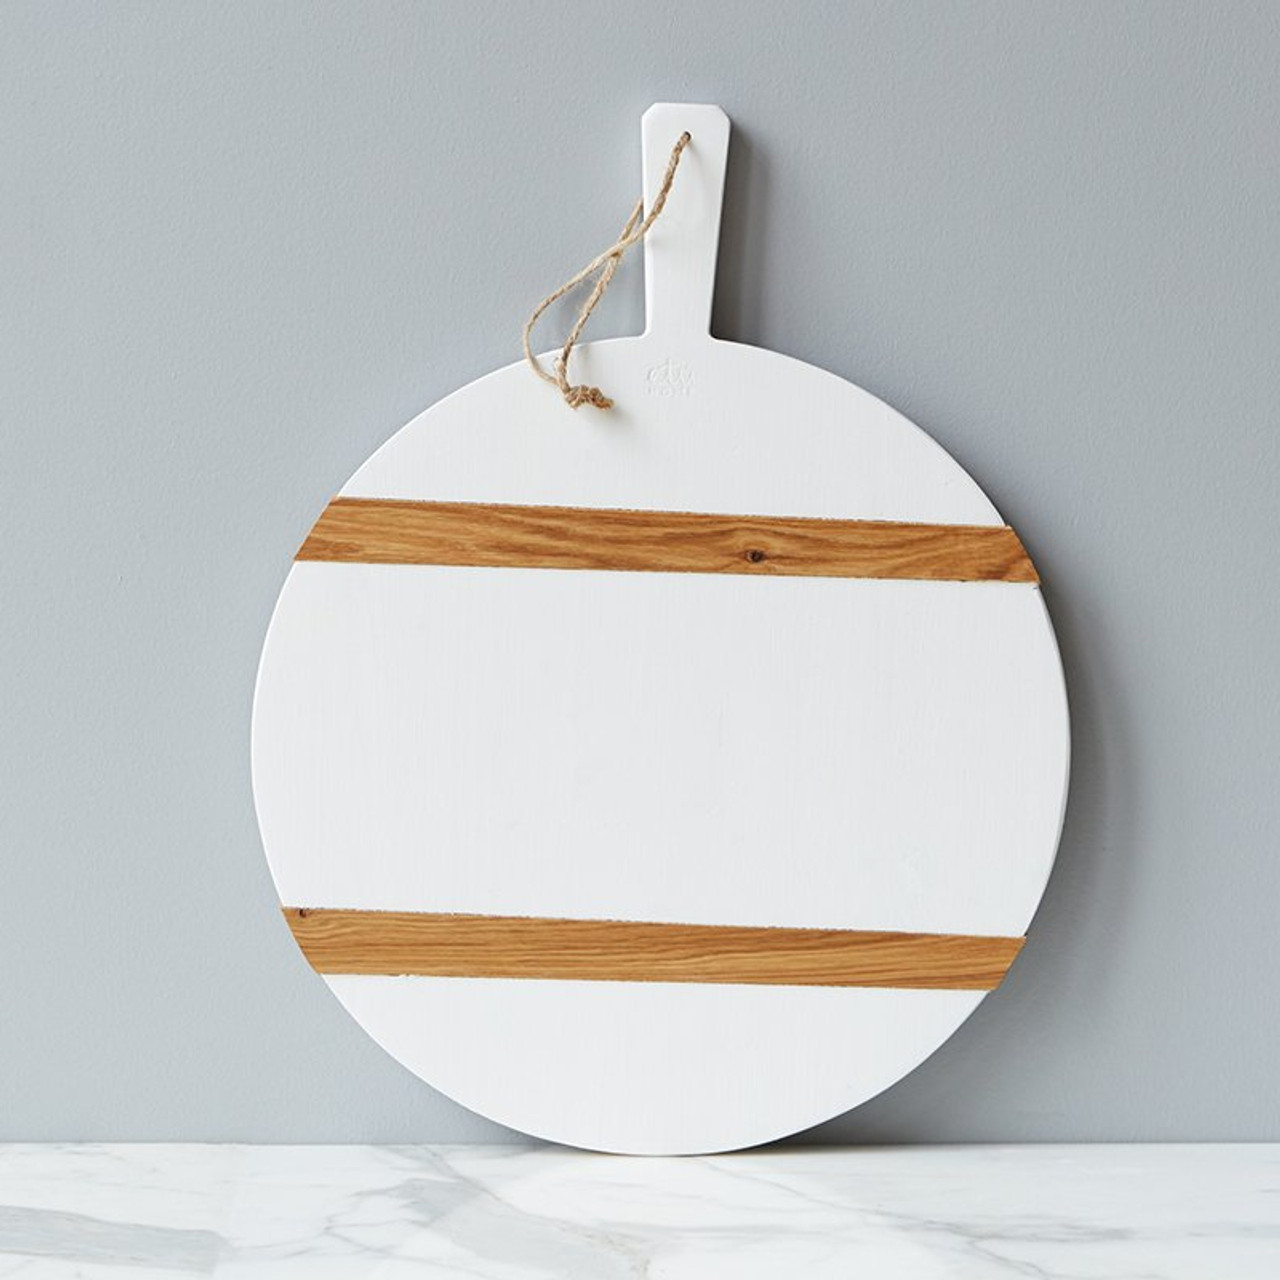 CHARCUTERIE BOARD - MOD WHITE ROUND MEDIUM